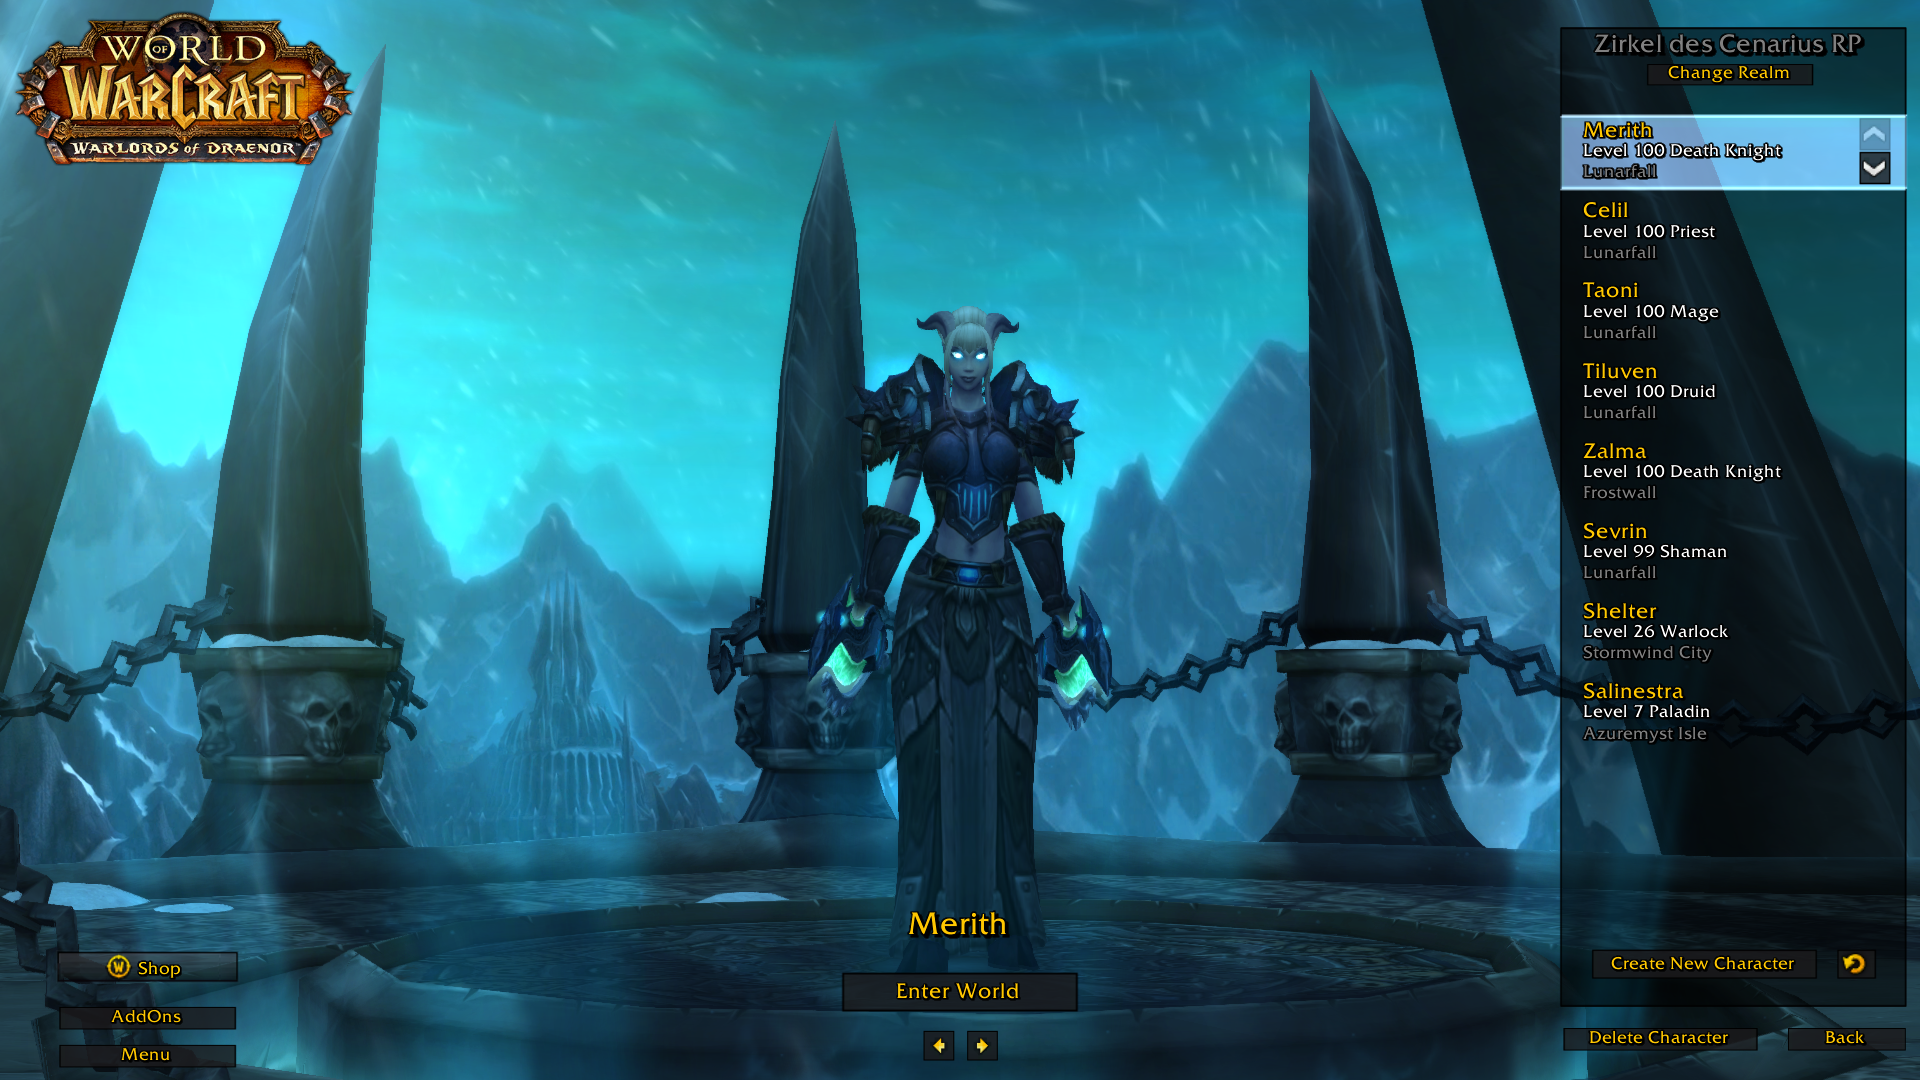 Plug-Ins & Patches : World of Warcraft AddOns